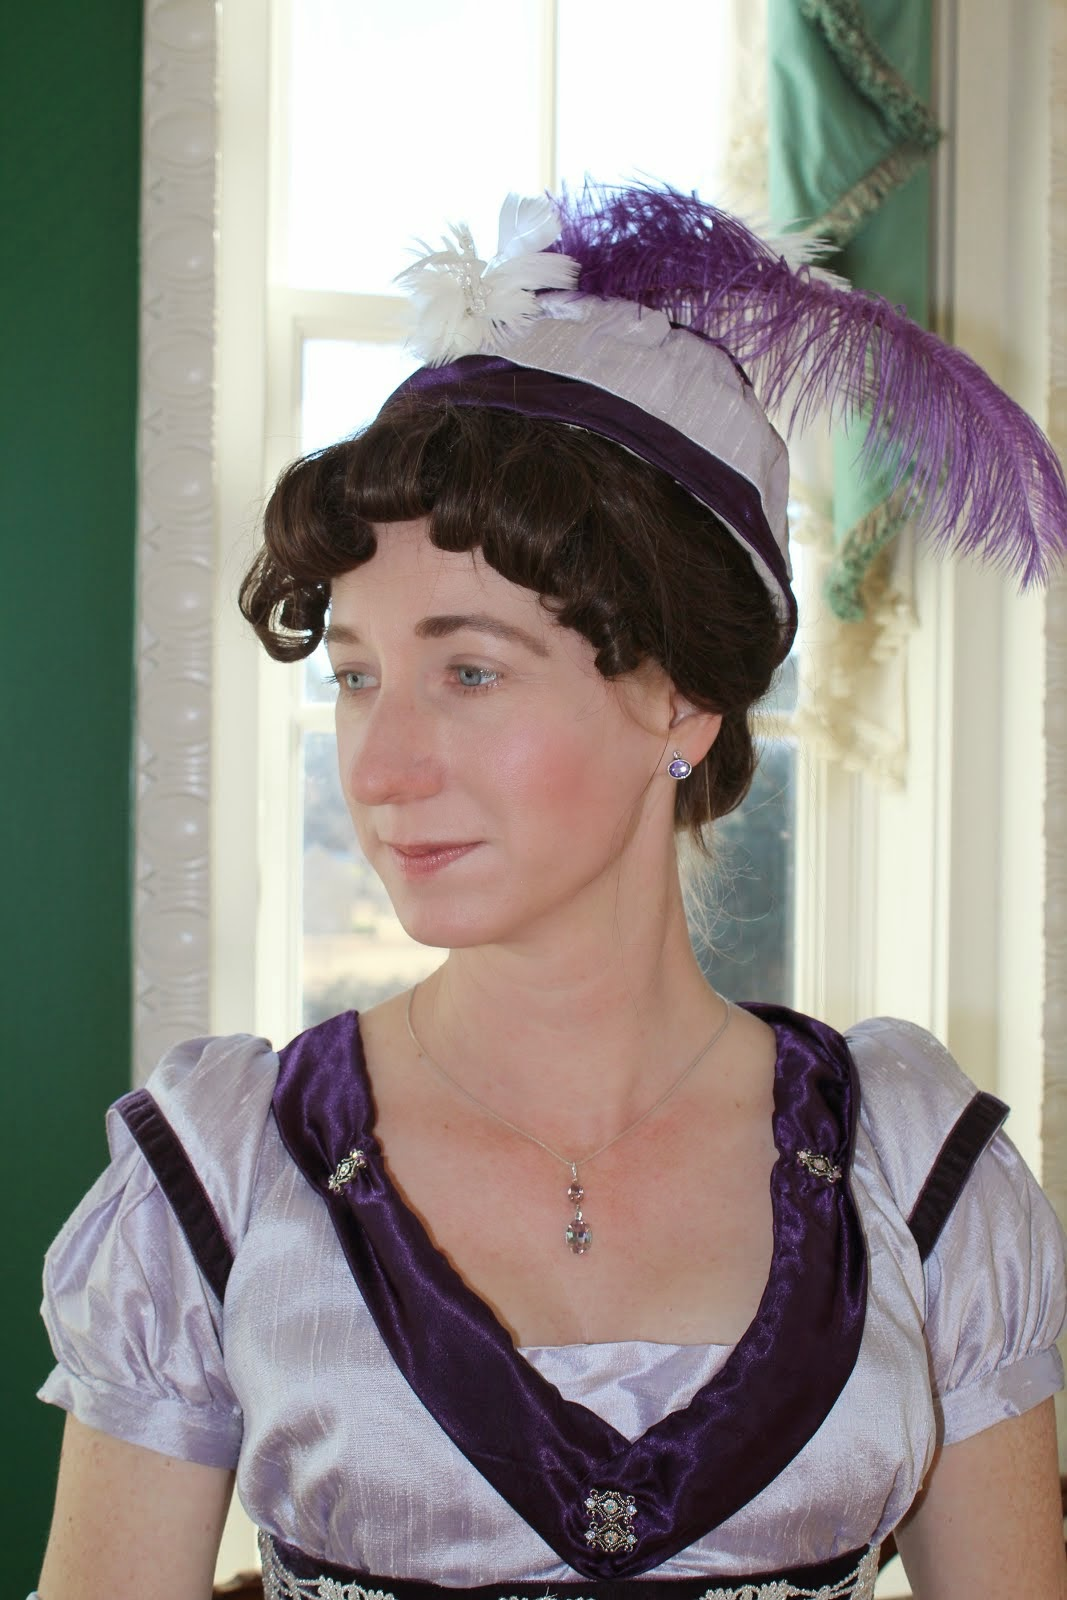 Ms. Moore as Dolley Madison